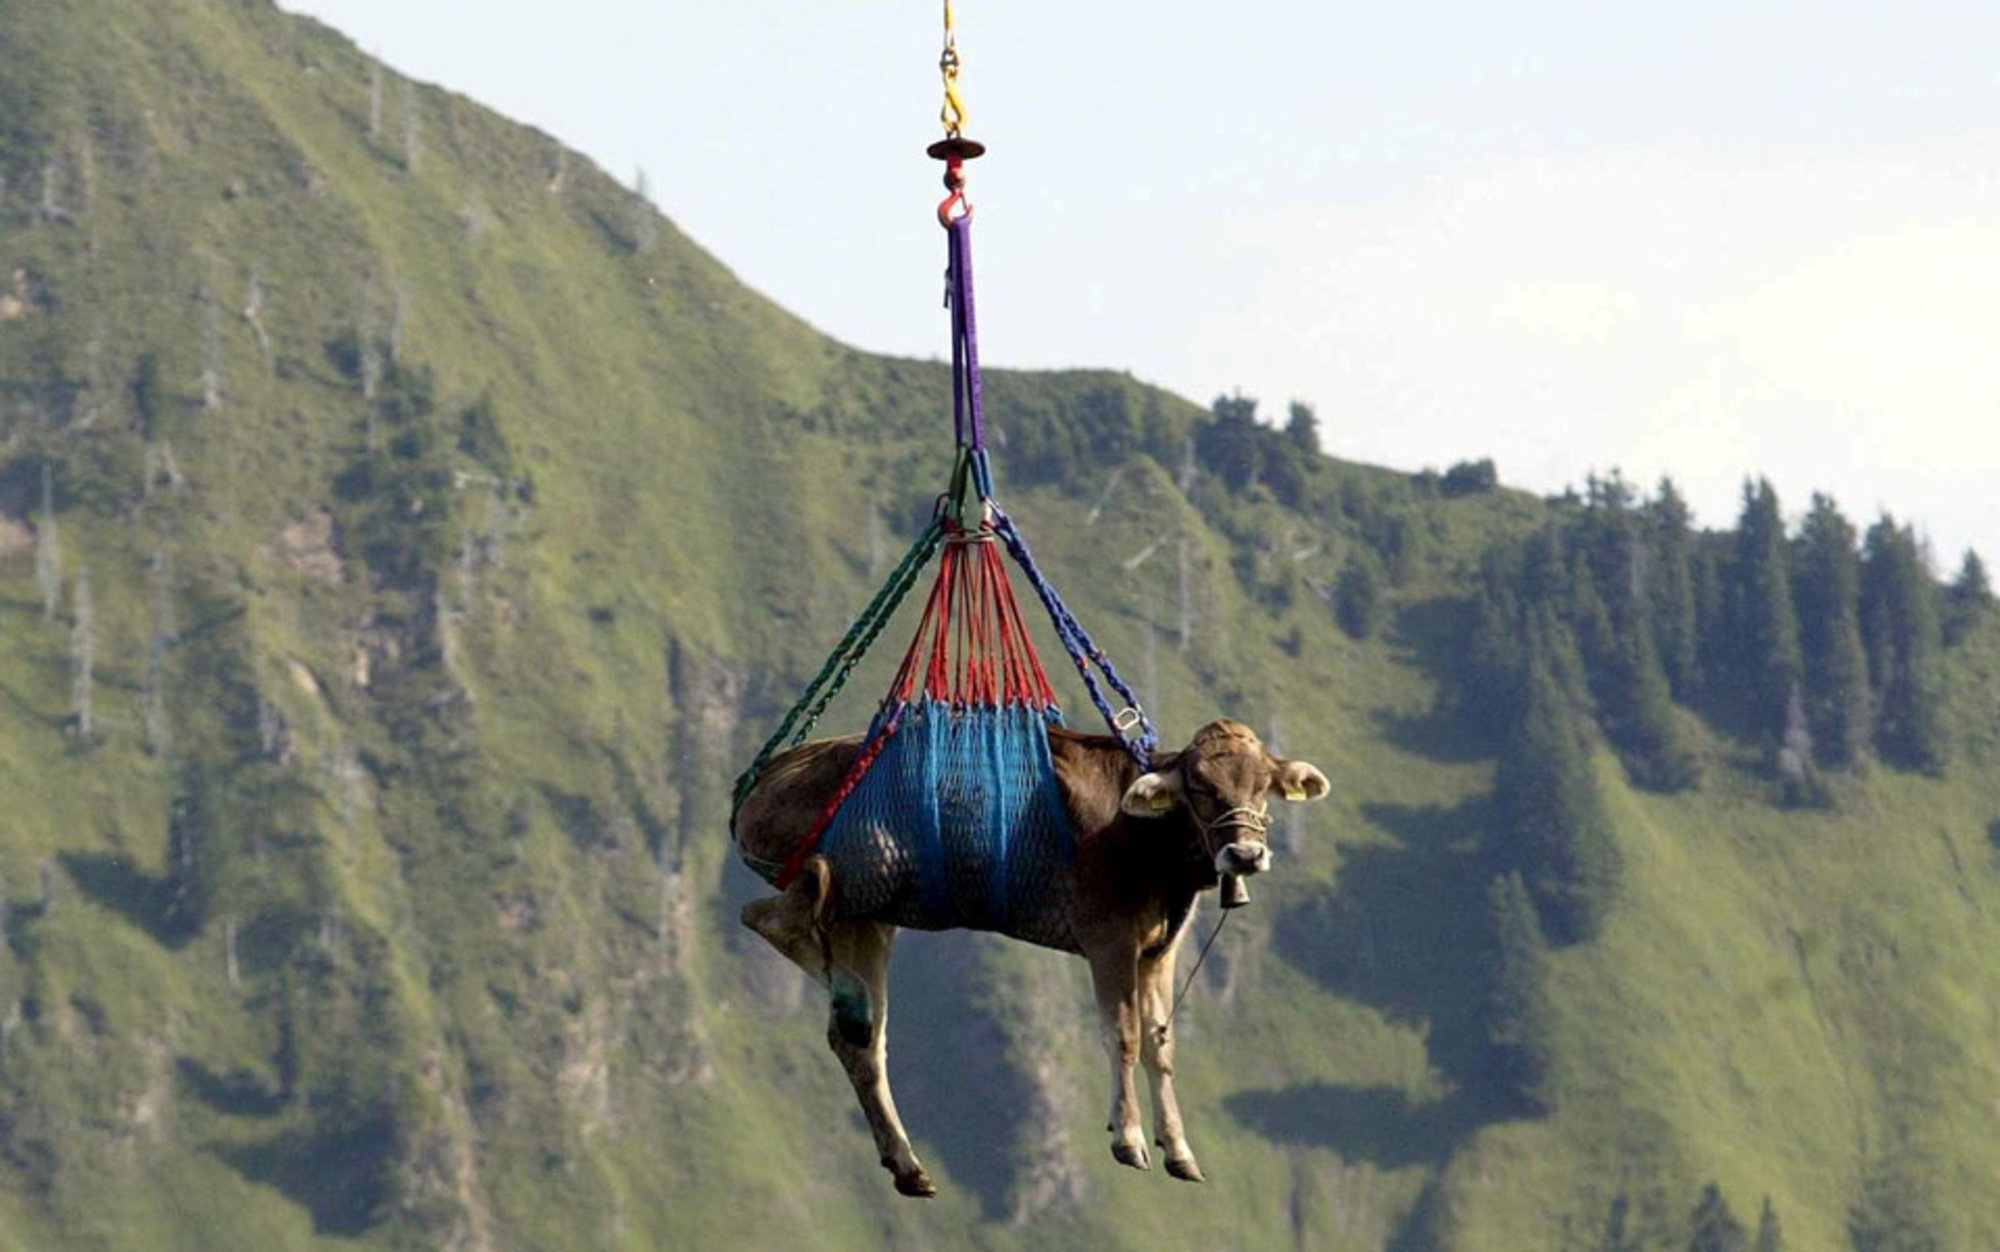 https://epsilon.aeon.co/images/5b60d025-44d1-4623-bfe8-0e28abac753b/header_Cow-flying.jpg